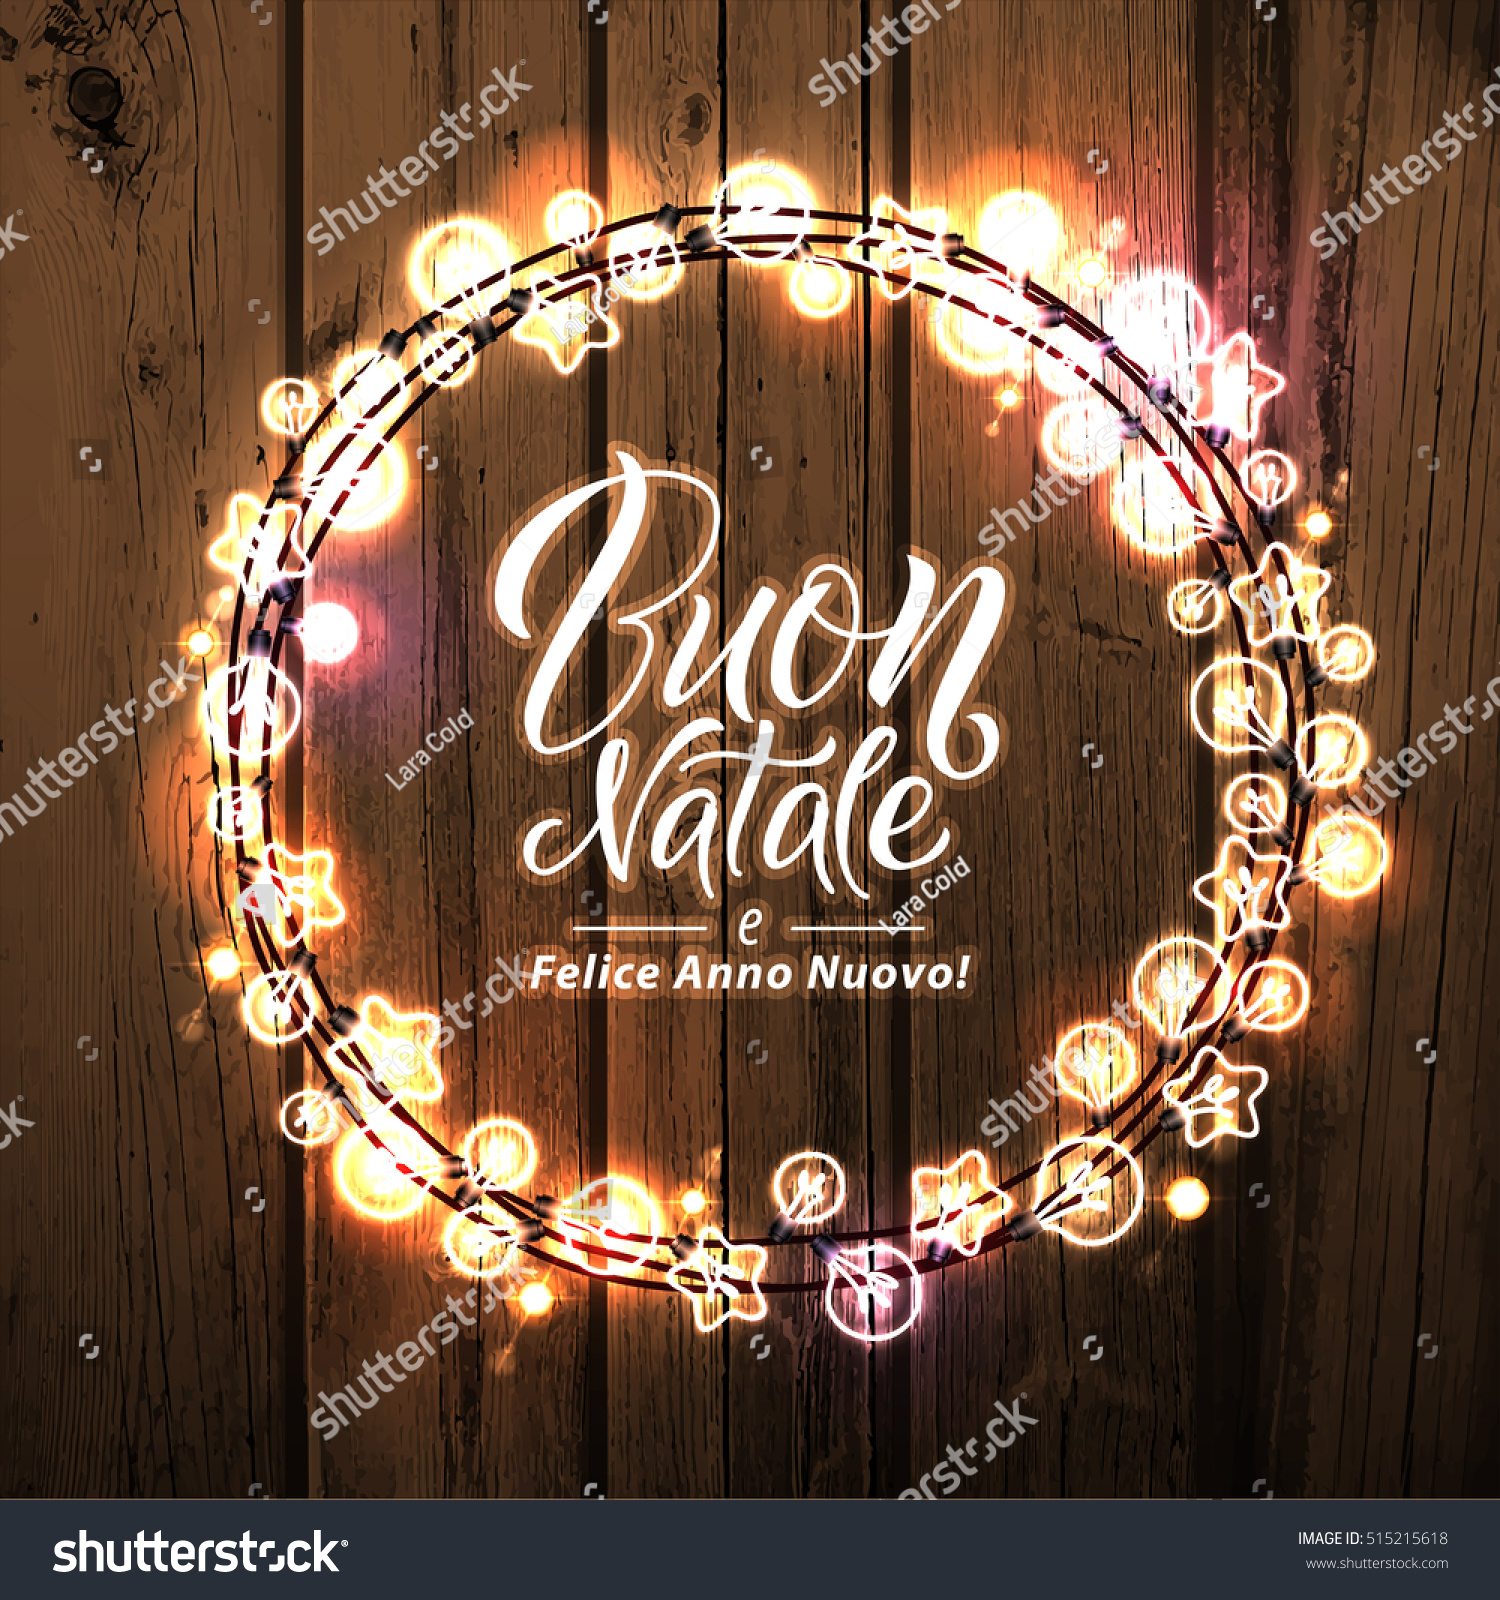 merry christmas and happy new year italian language glowing christmas lights wreath for xmas - Italian For Merry Christmas